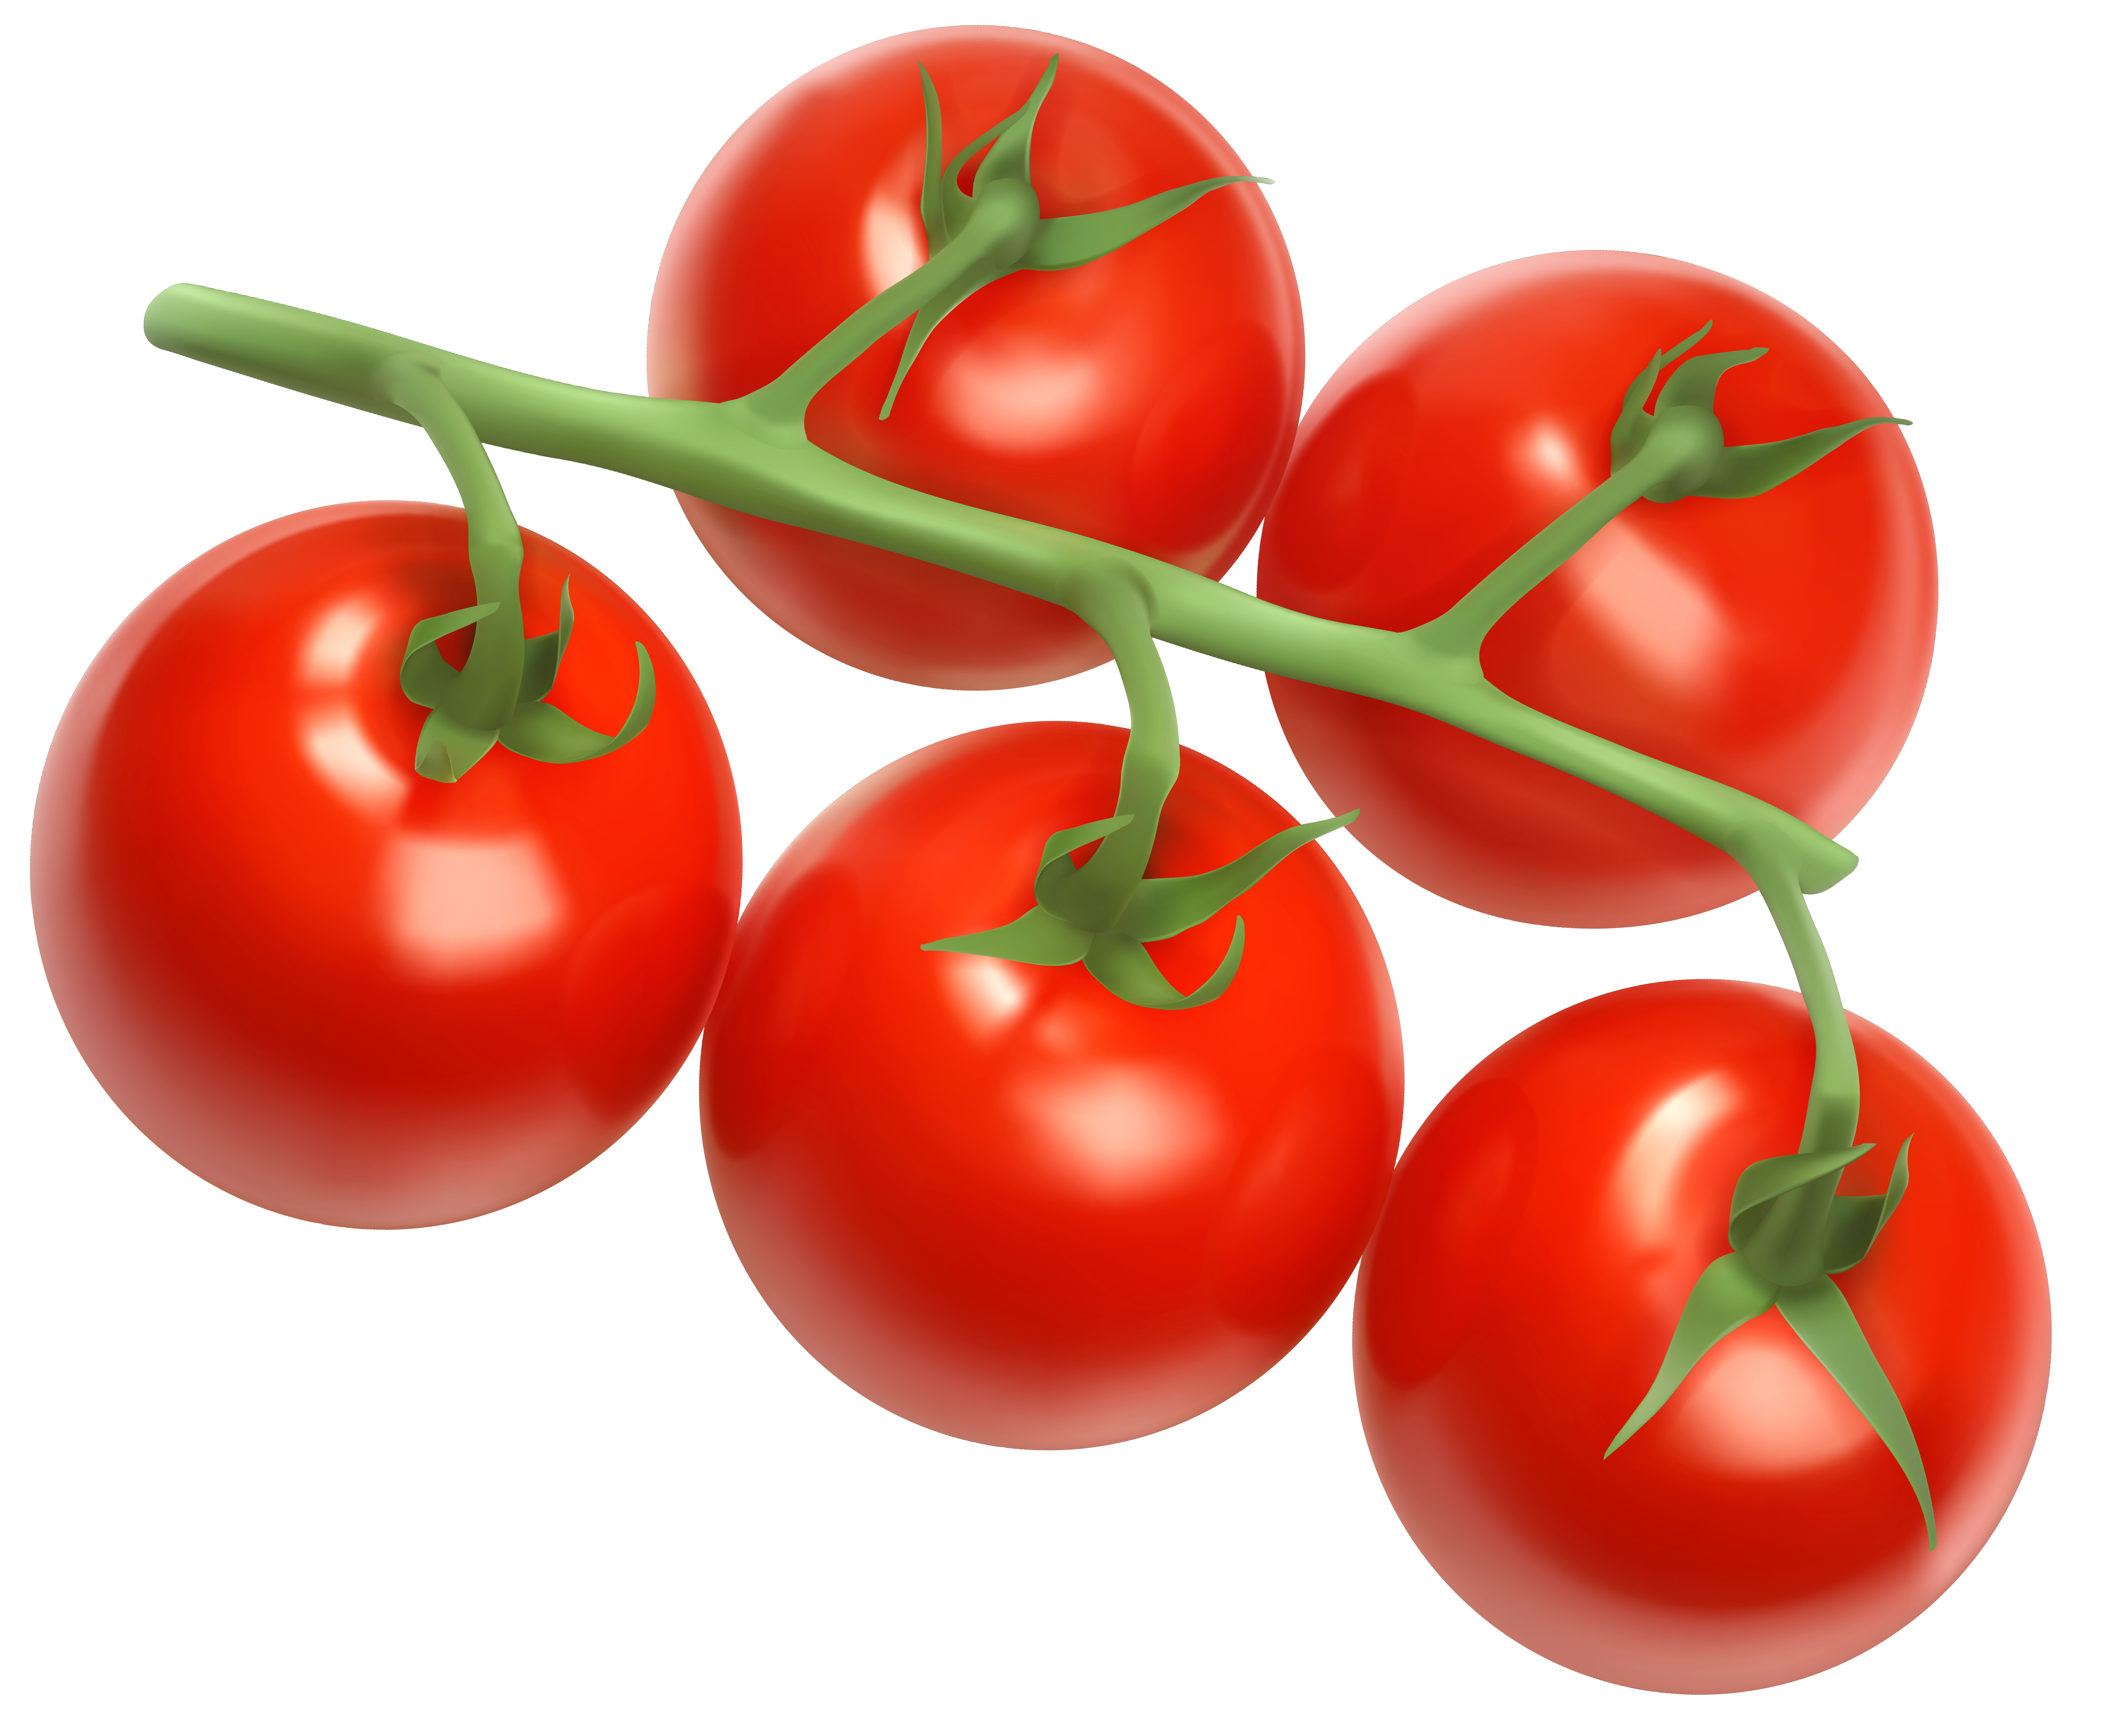 Tomatoes PNG Vector Clipart Image.